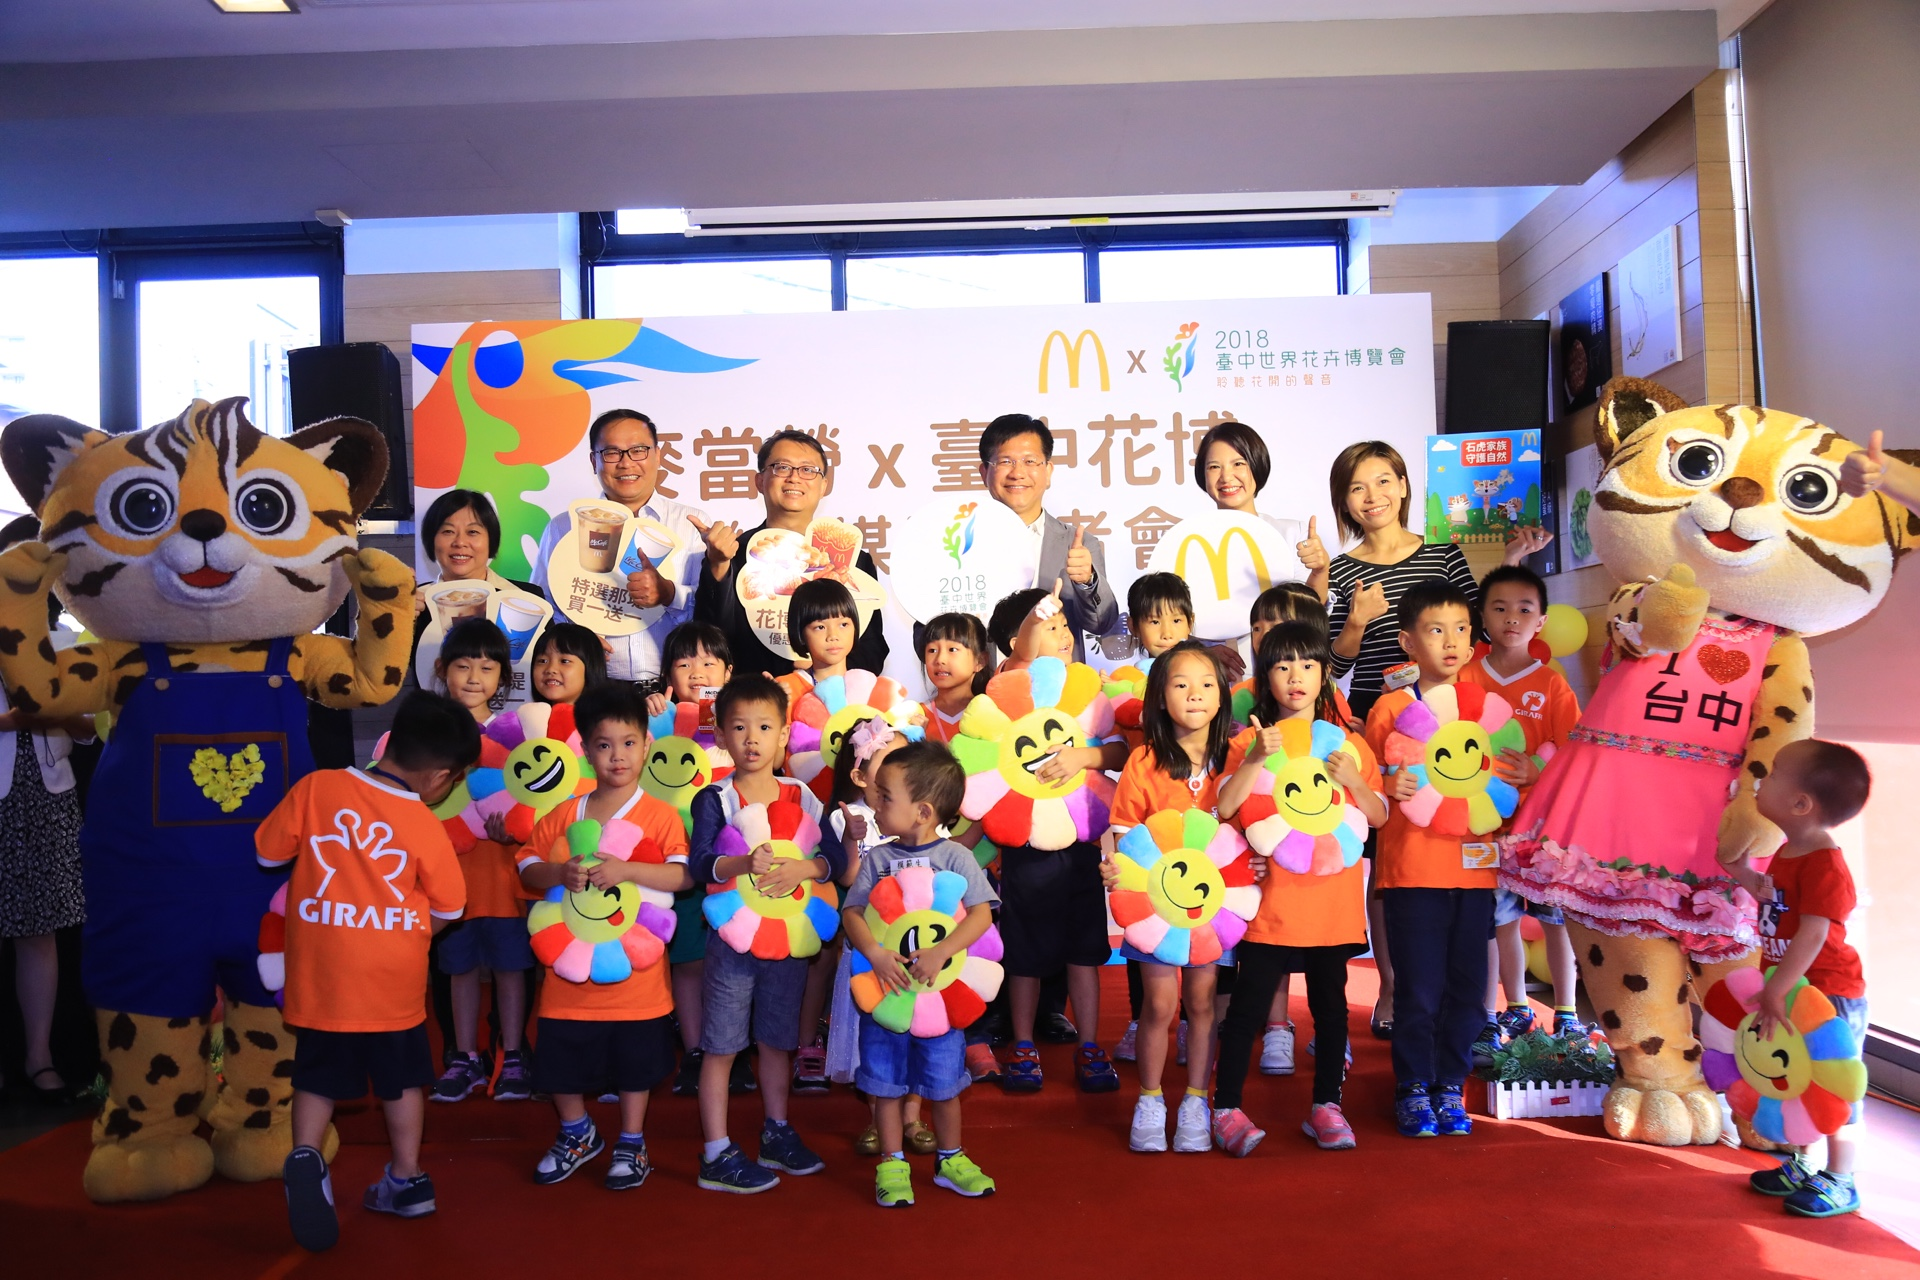 McDonald's Taiwan is echoing to Taichung Flora Expo and introducing many special programs